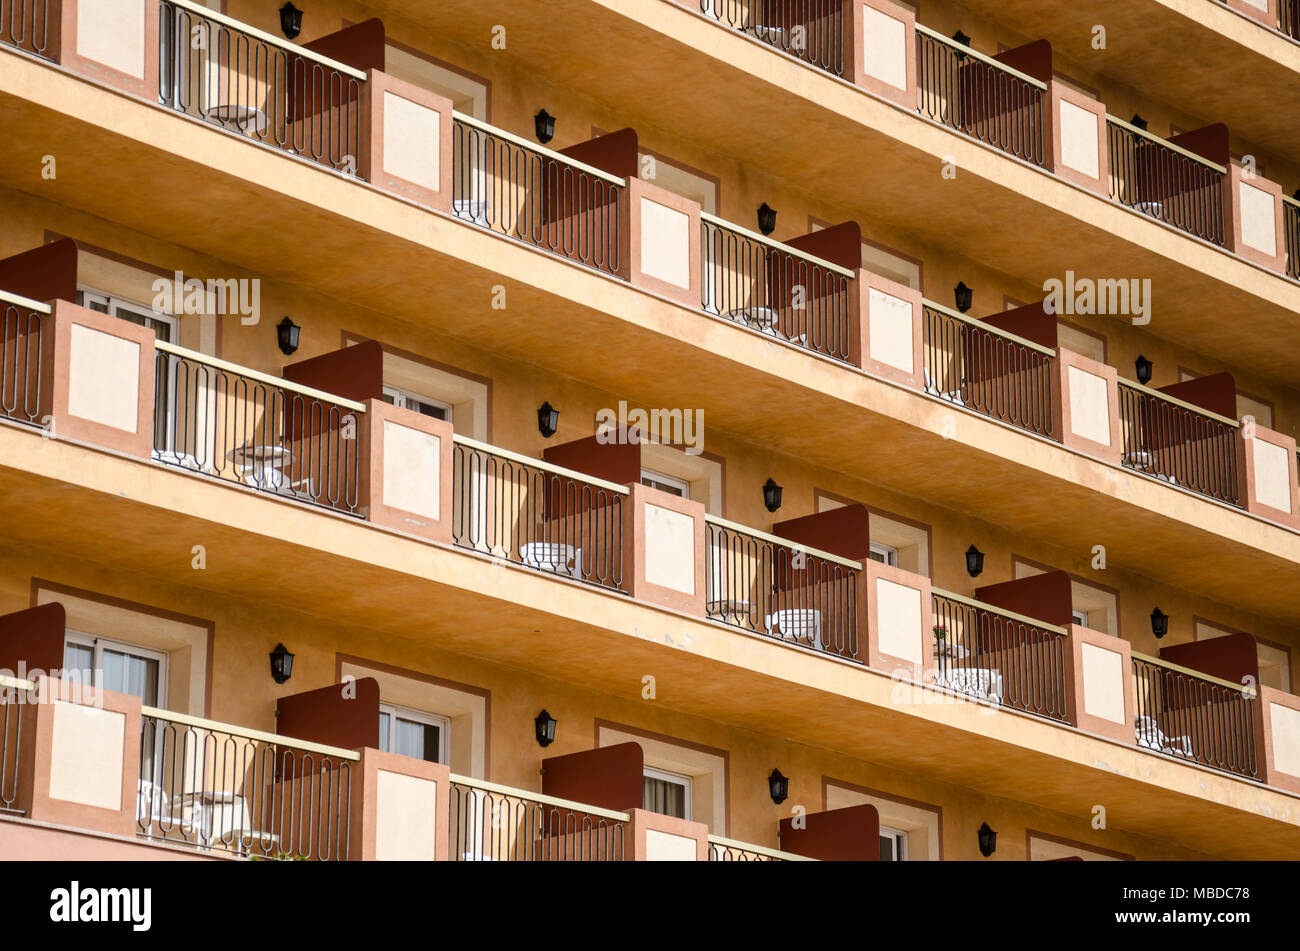 A close up view of balconies belonging to a hotel in Santa Susanna, Spain uniformly laid out with picnic tables and chairs. - Stock Image